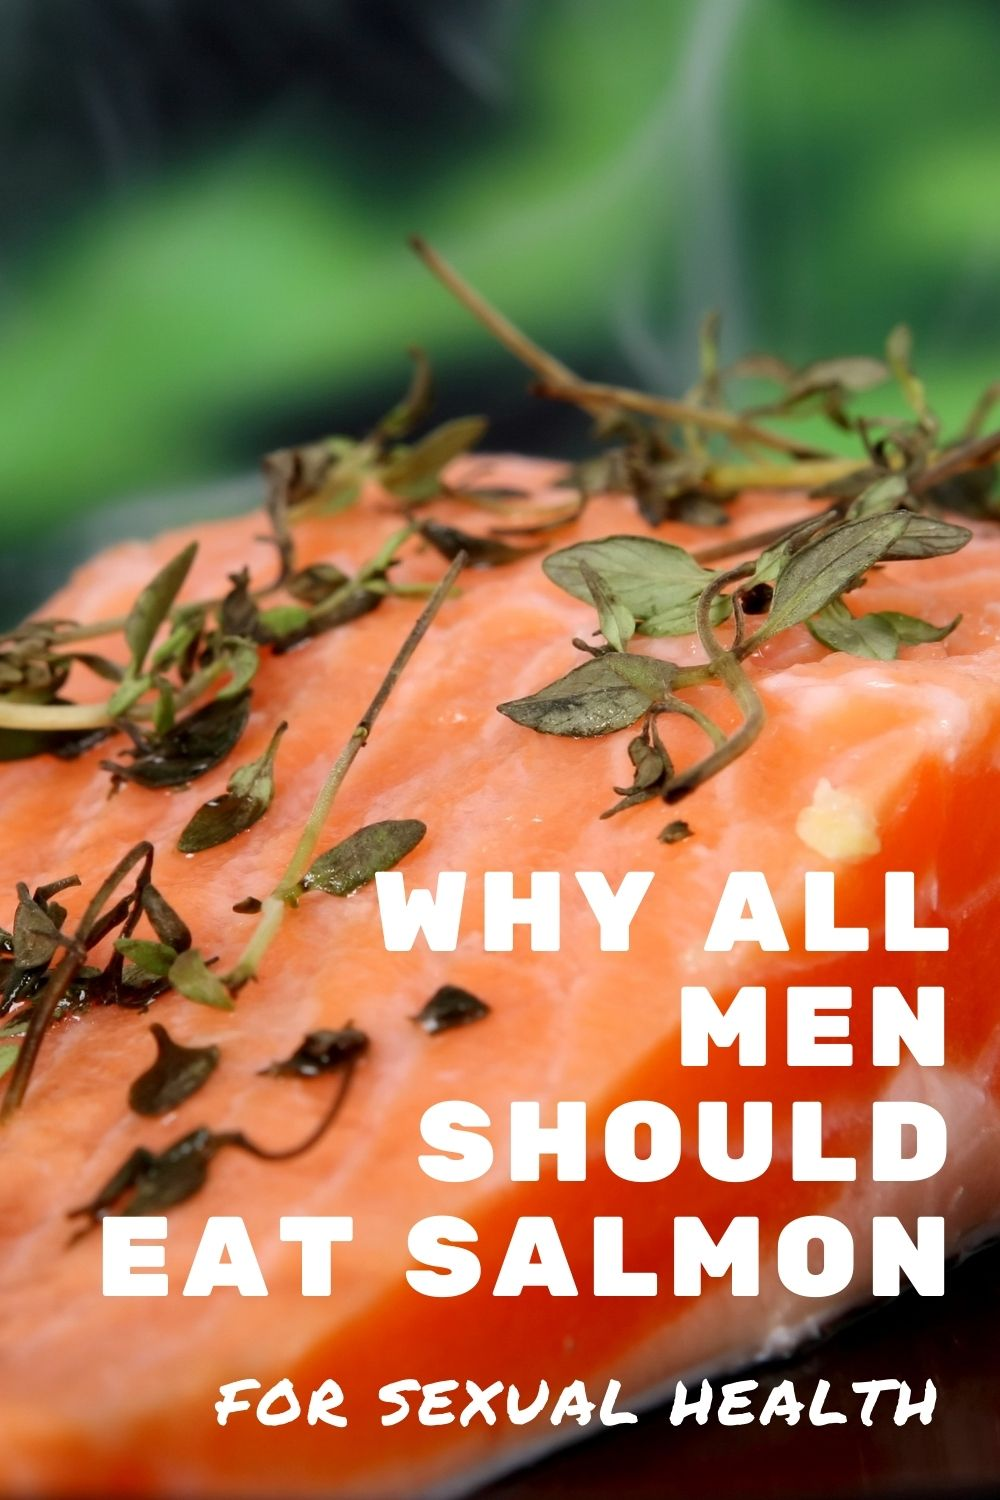 salmon and sex graphic